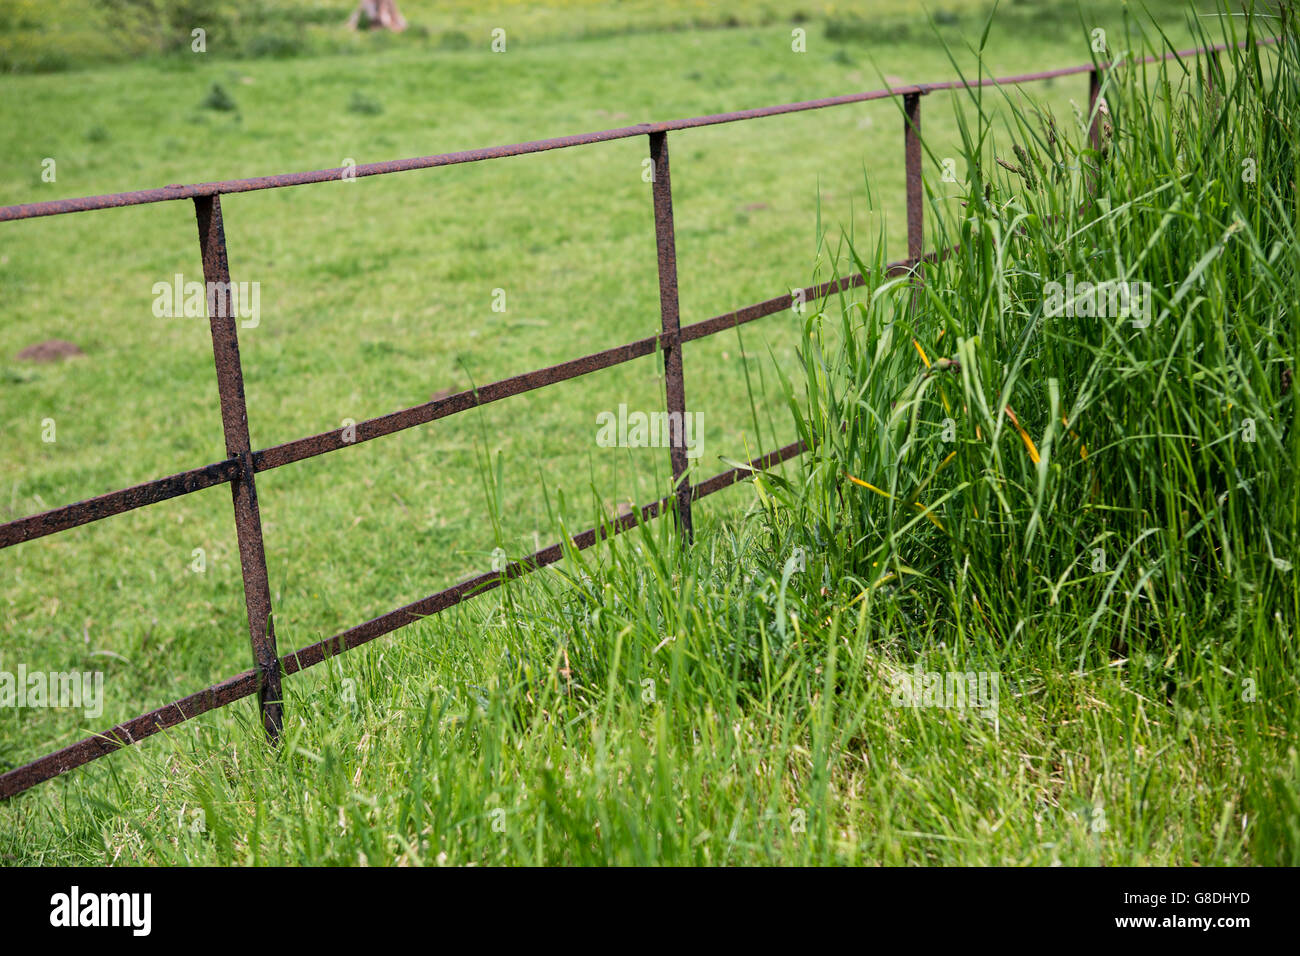 An old rusty weatherd iron fence on the edge of lush green pastureland. - Stock Image